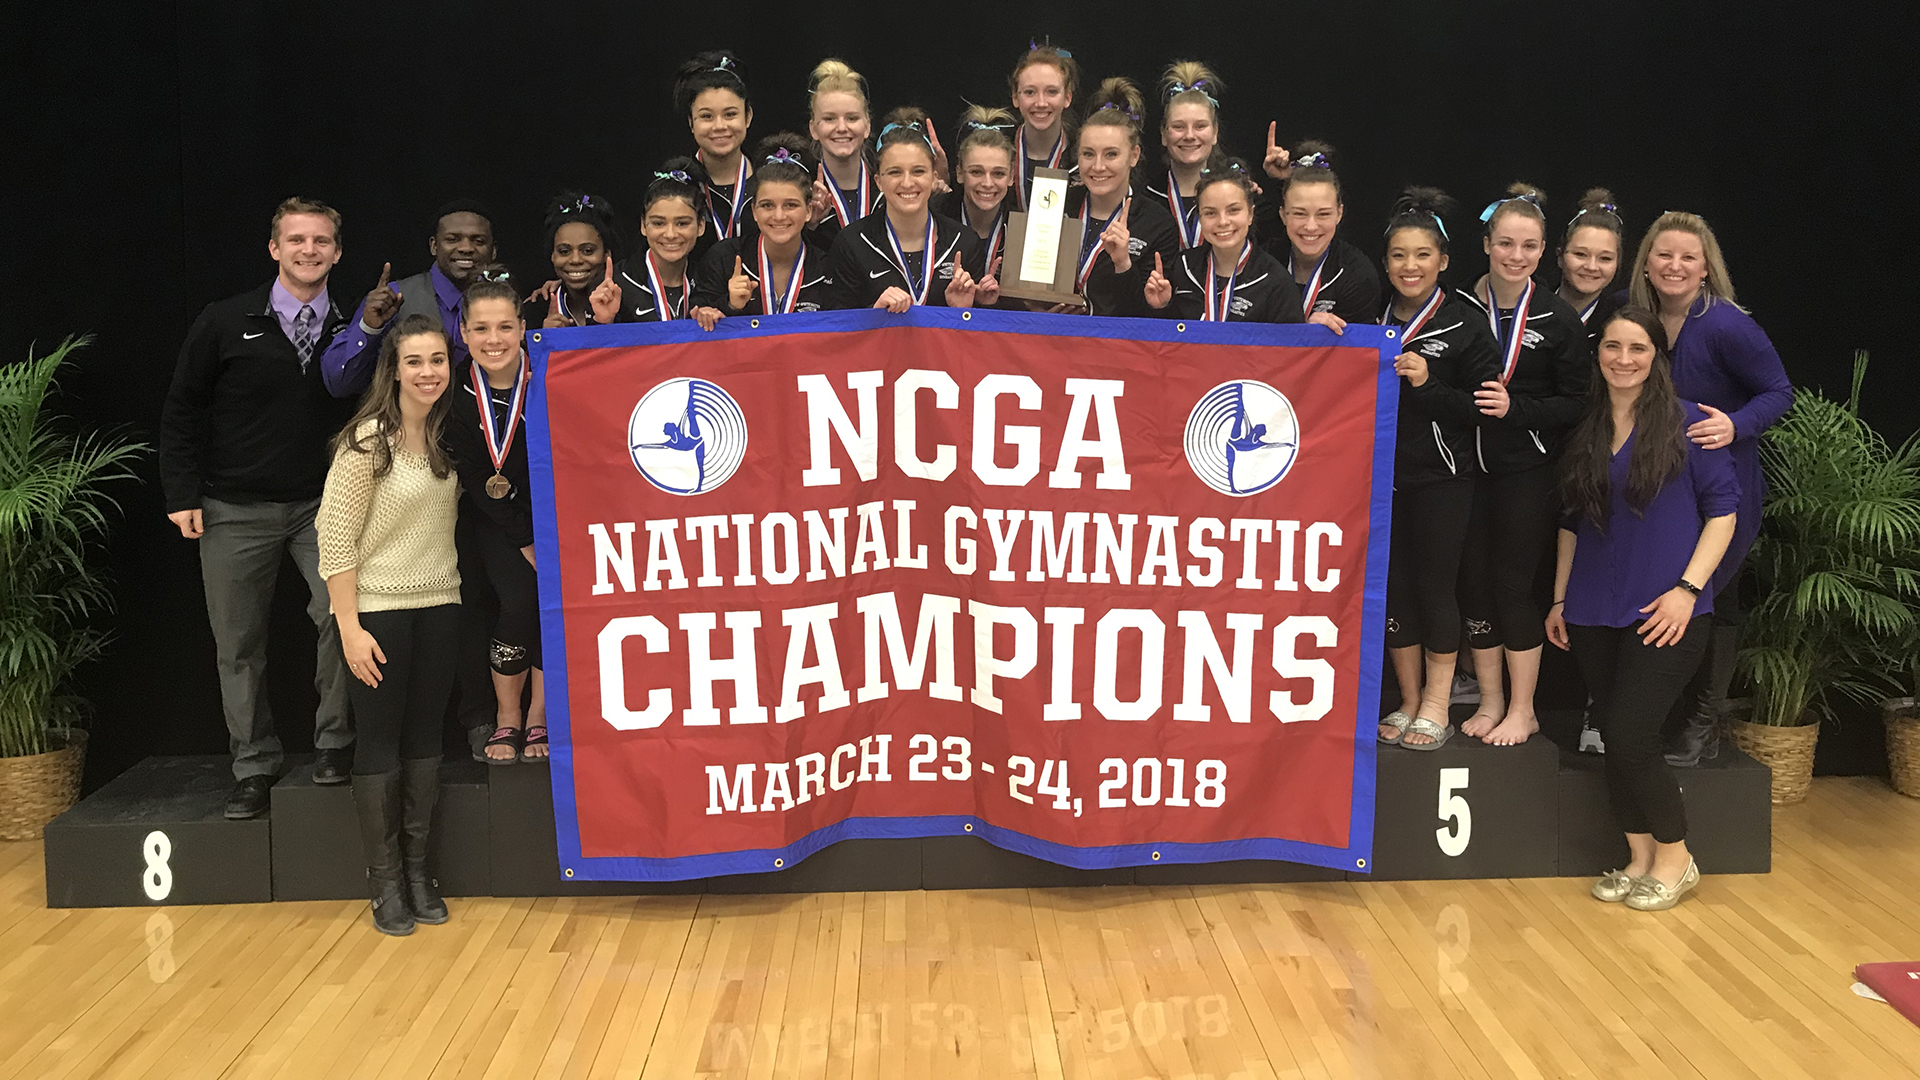 Gym ncga champs march23